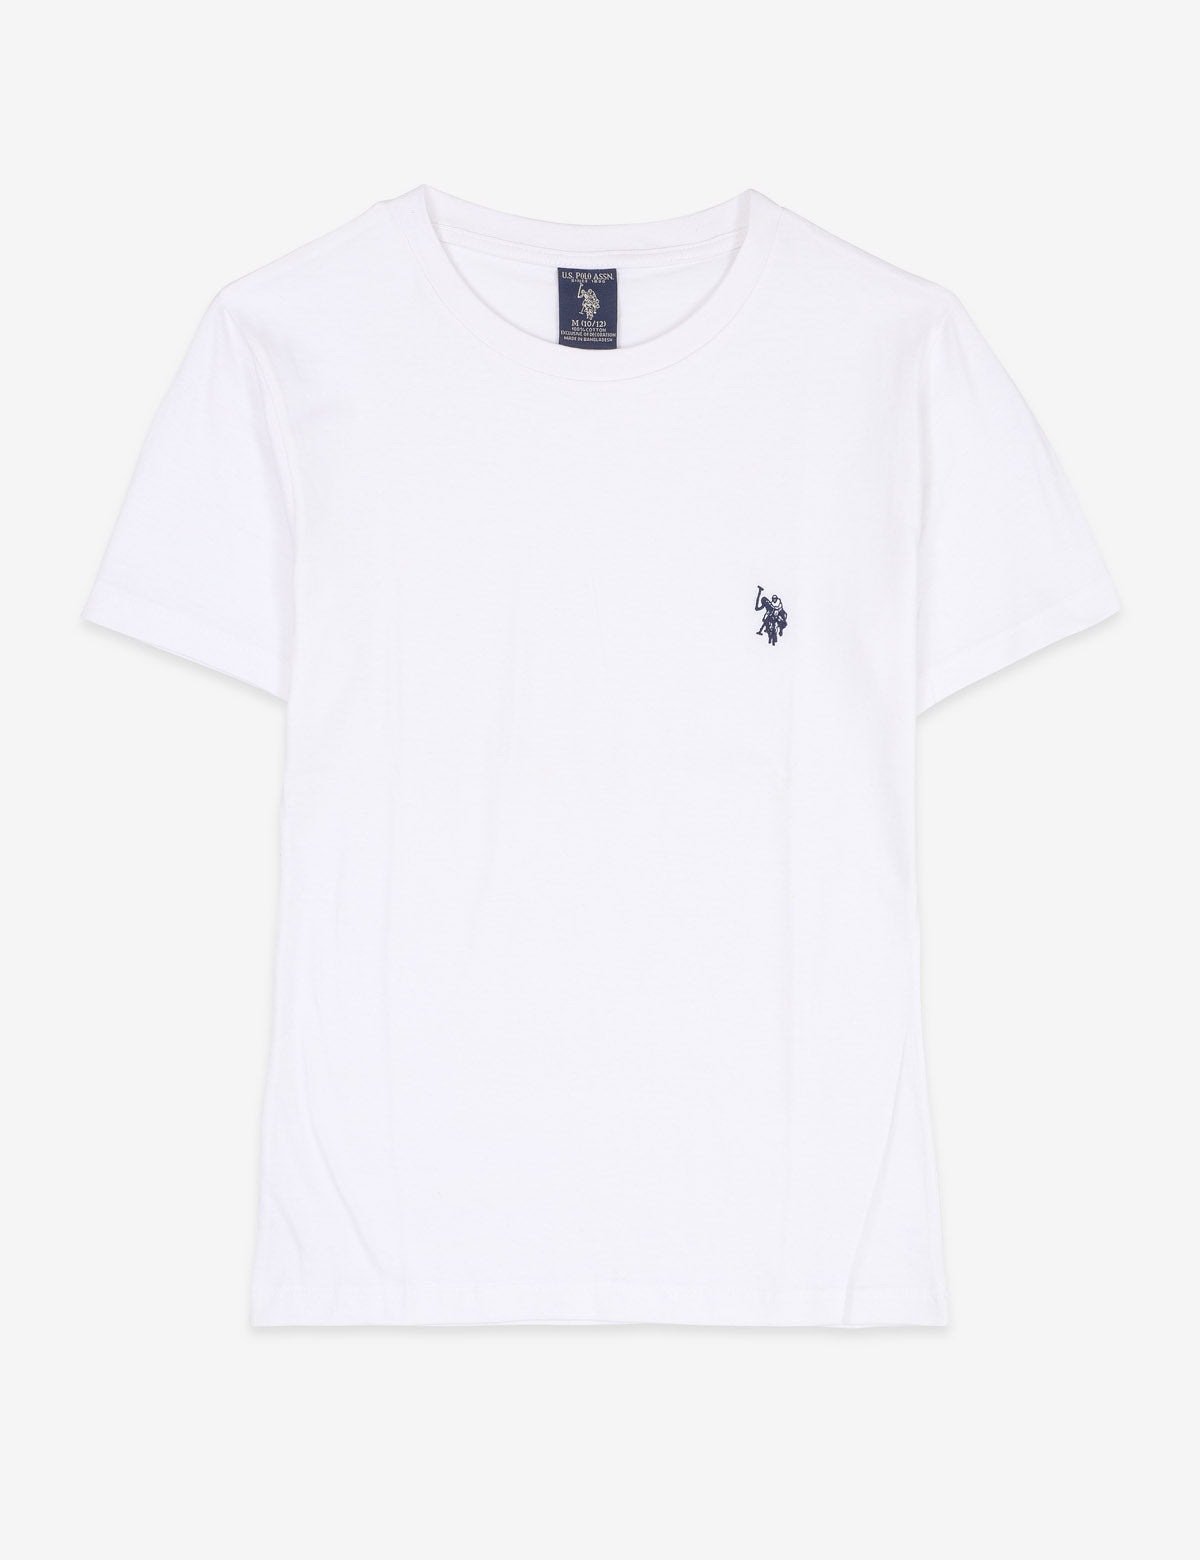 BOYS CREW NECK T-SHIRT - U.S. Polo Assn.